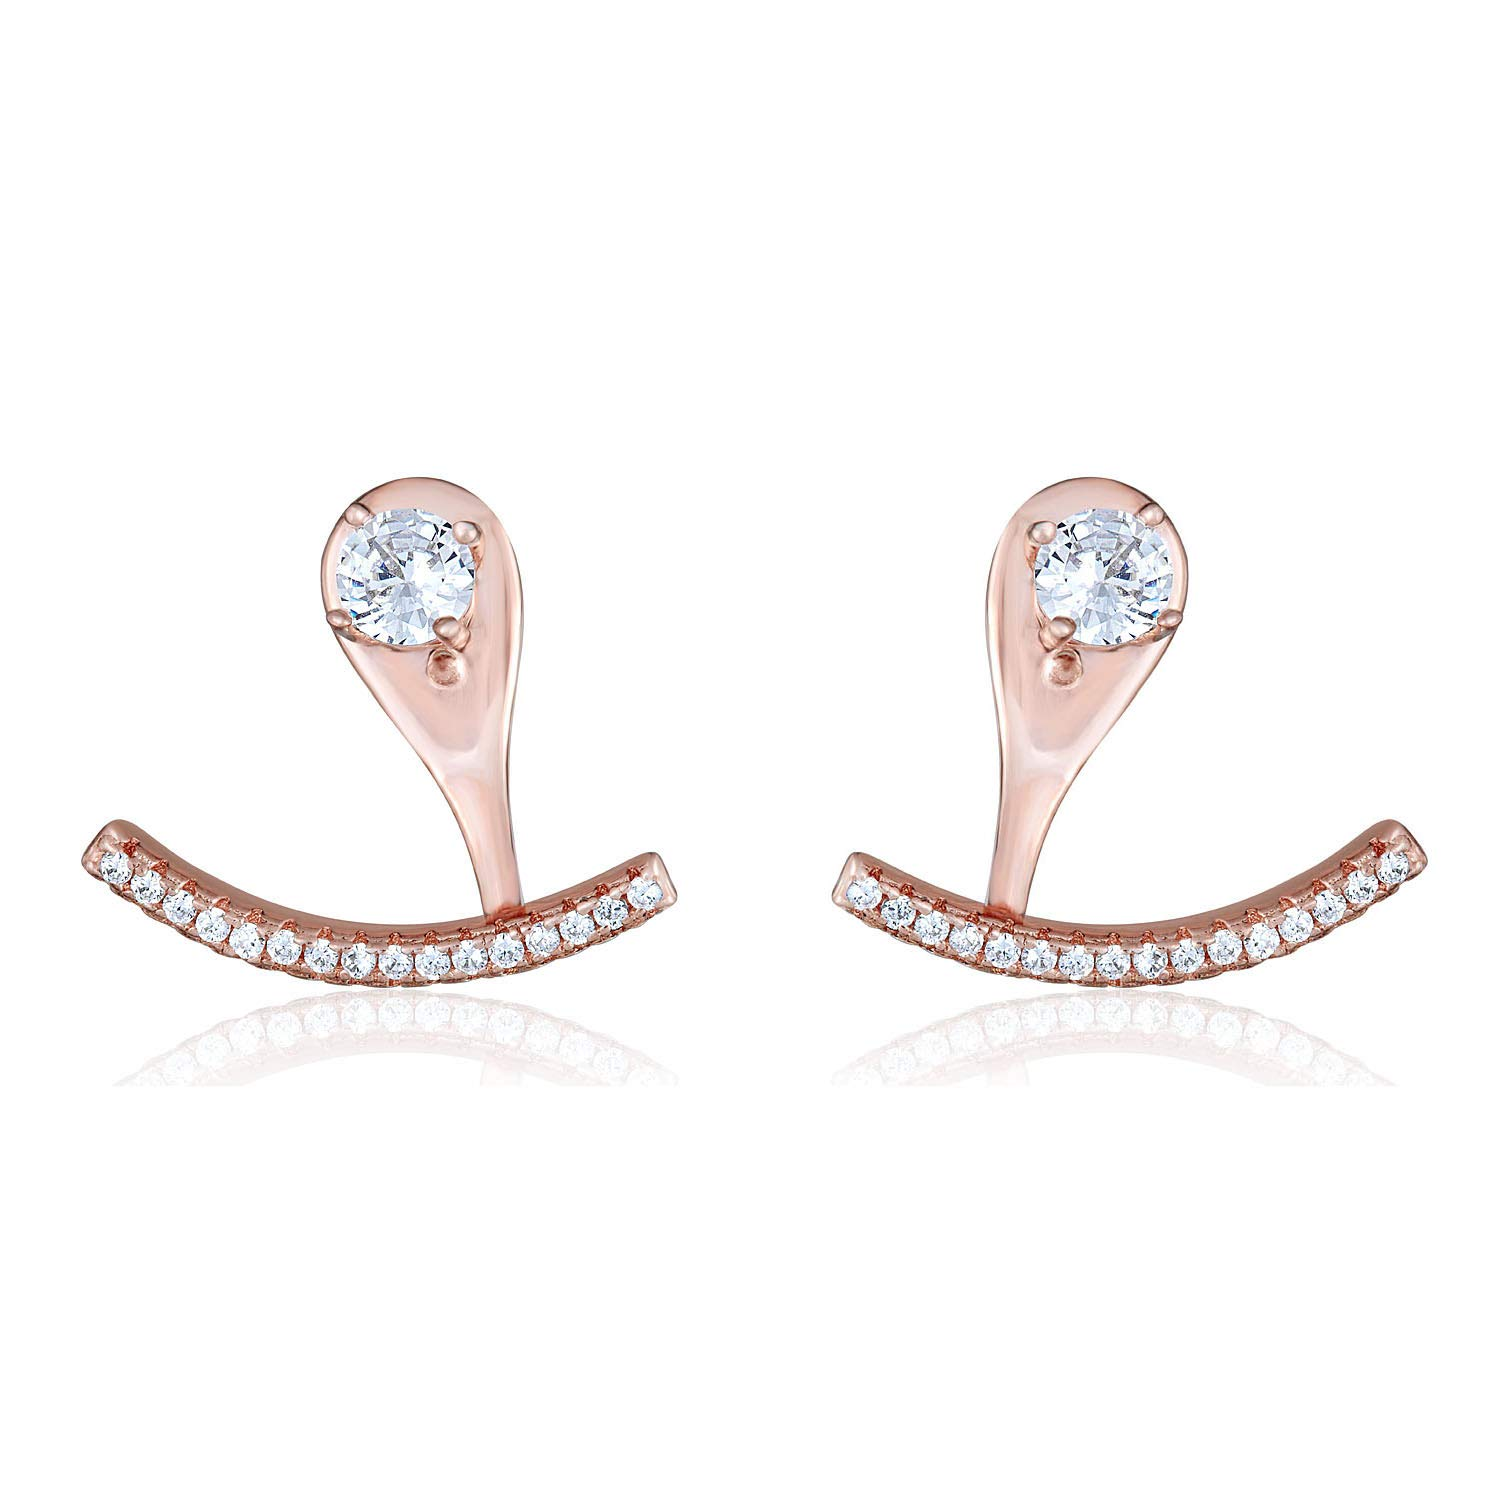 925 Sterling Silver Rose-Gold plated Simulated Diamond CZ Solitaire Stud Earrings and Curved Bar Pendulum Drop Jackets by AVORA